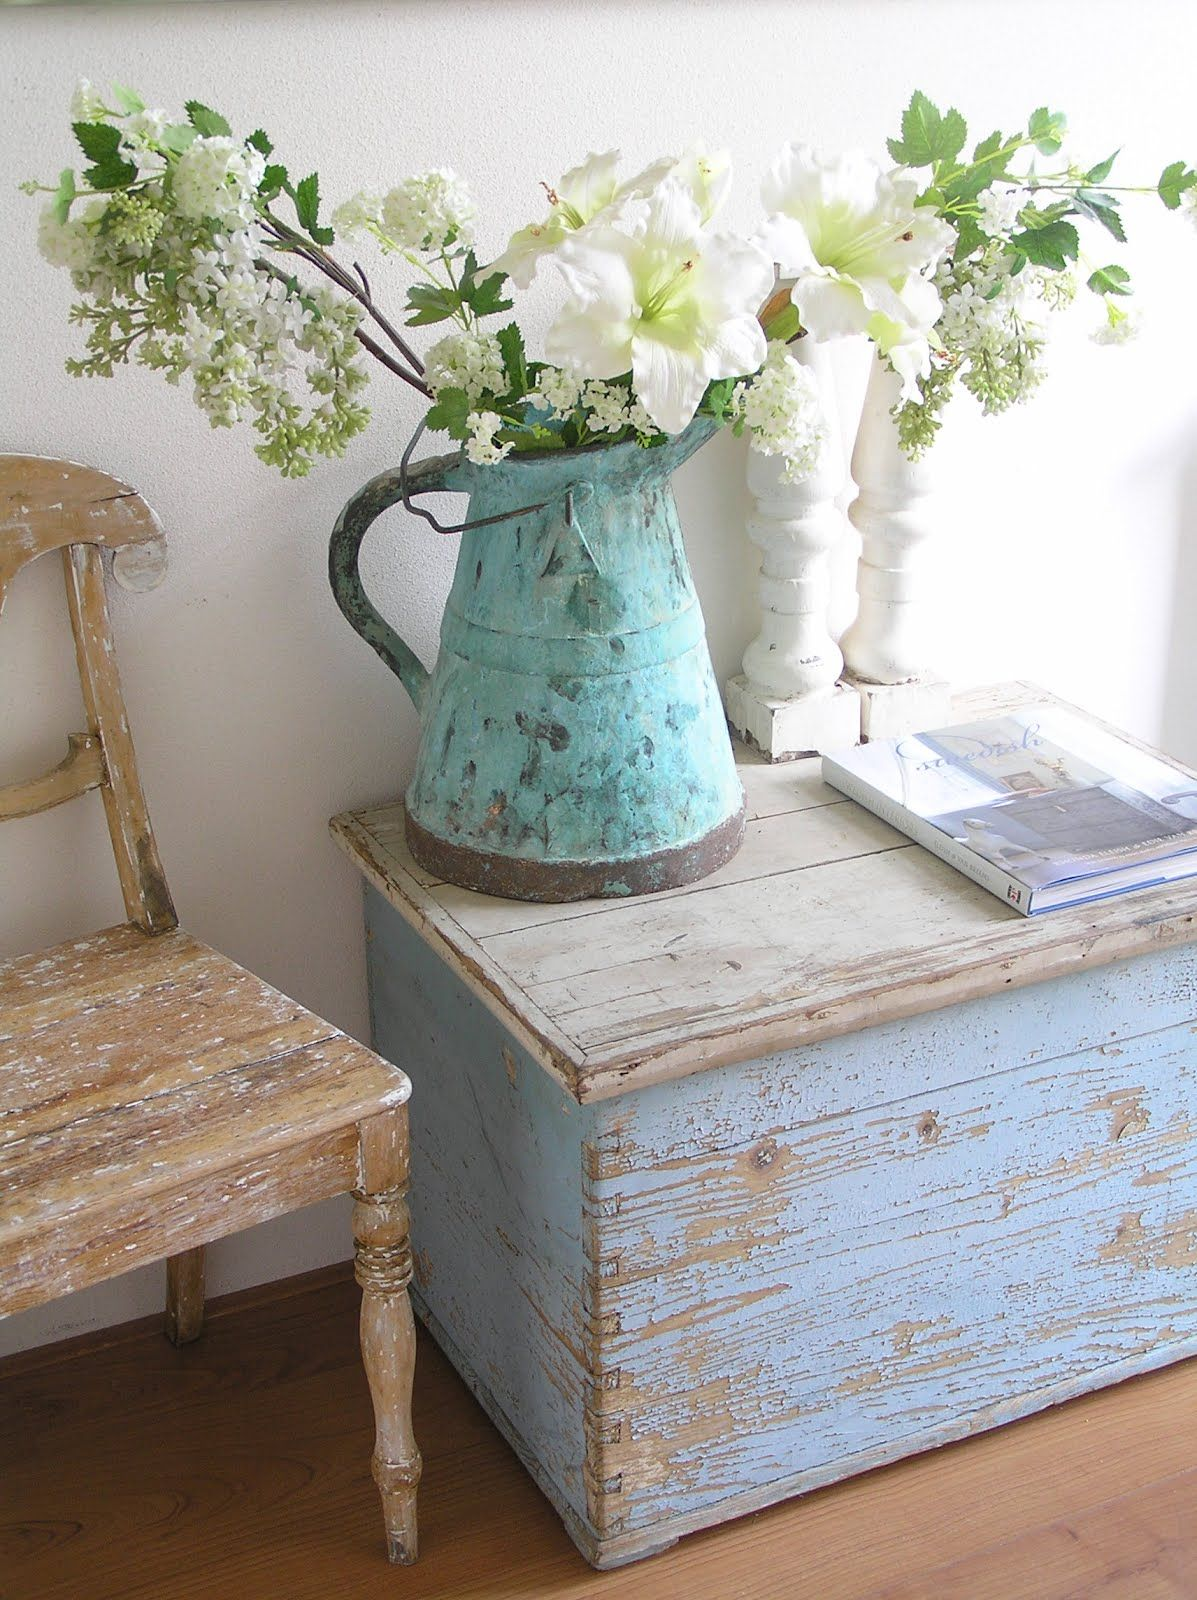 My Kind Of Blue White Love The Blue Pitcher And Trunk  # Muebles Muy Bonitos